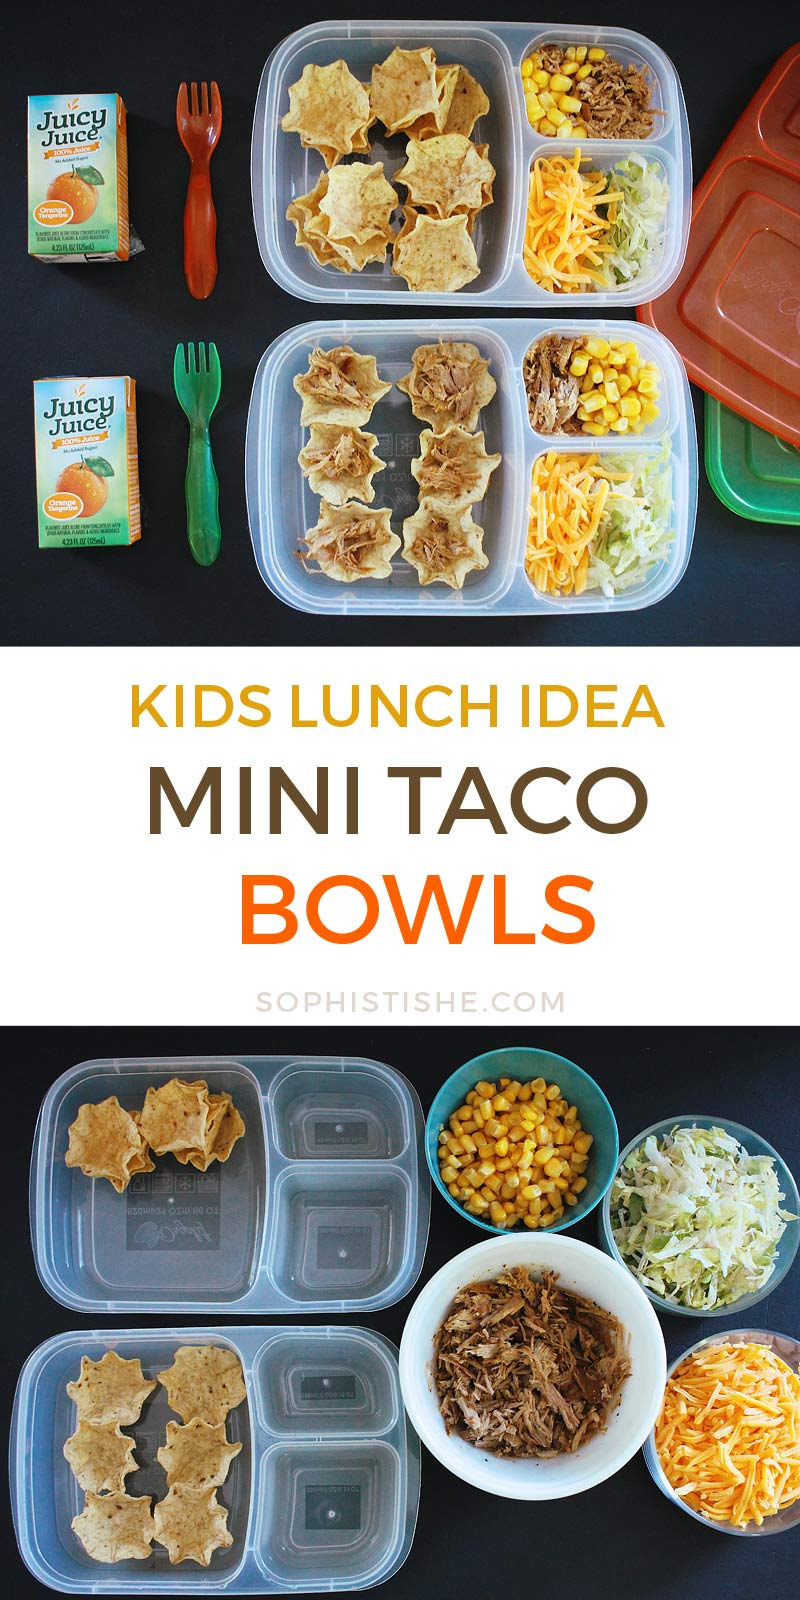 Kids Lunch: Mini Taco Bowls